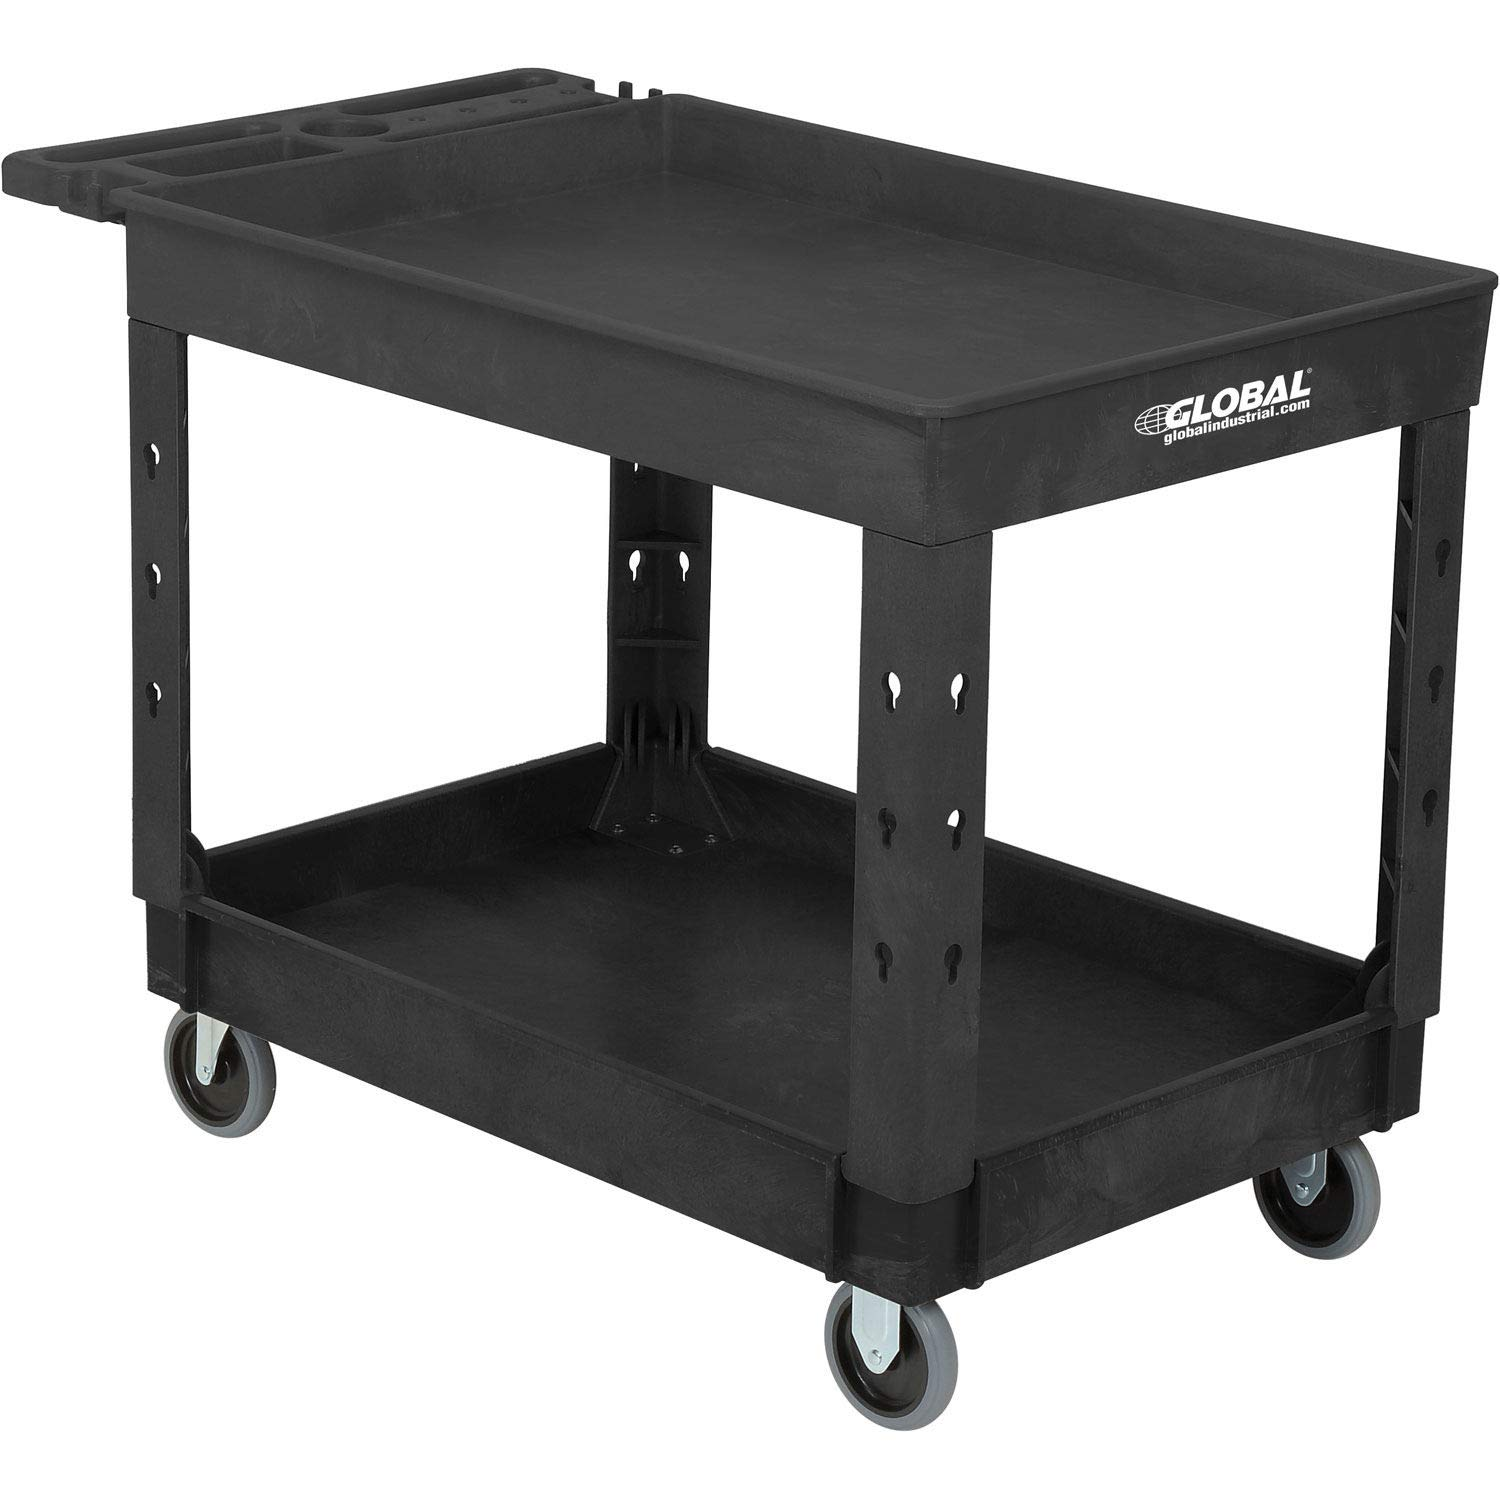 Industrial Service Utility Cart, Plastic 2 Tray Black Shelf, 44 x 25-1 2 , 5 Rubber Casters